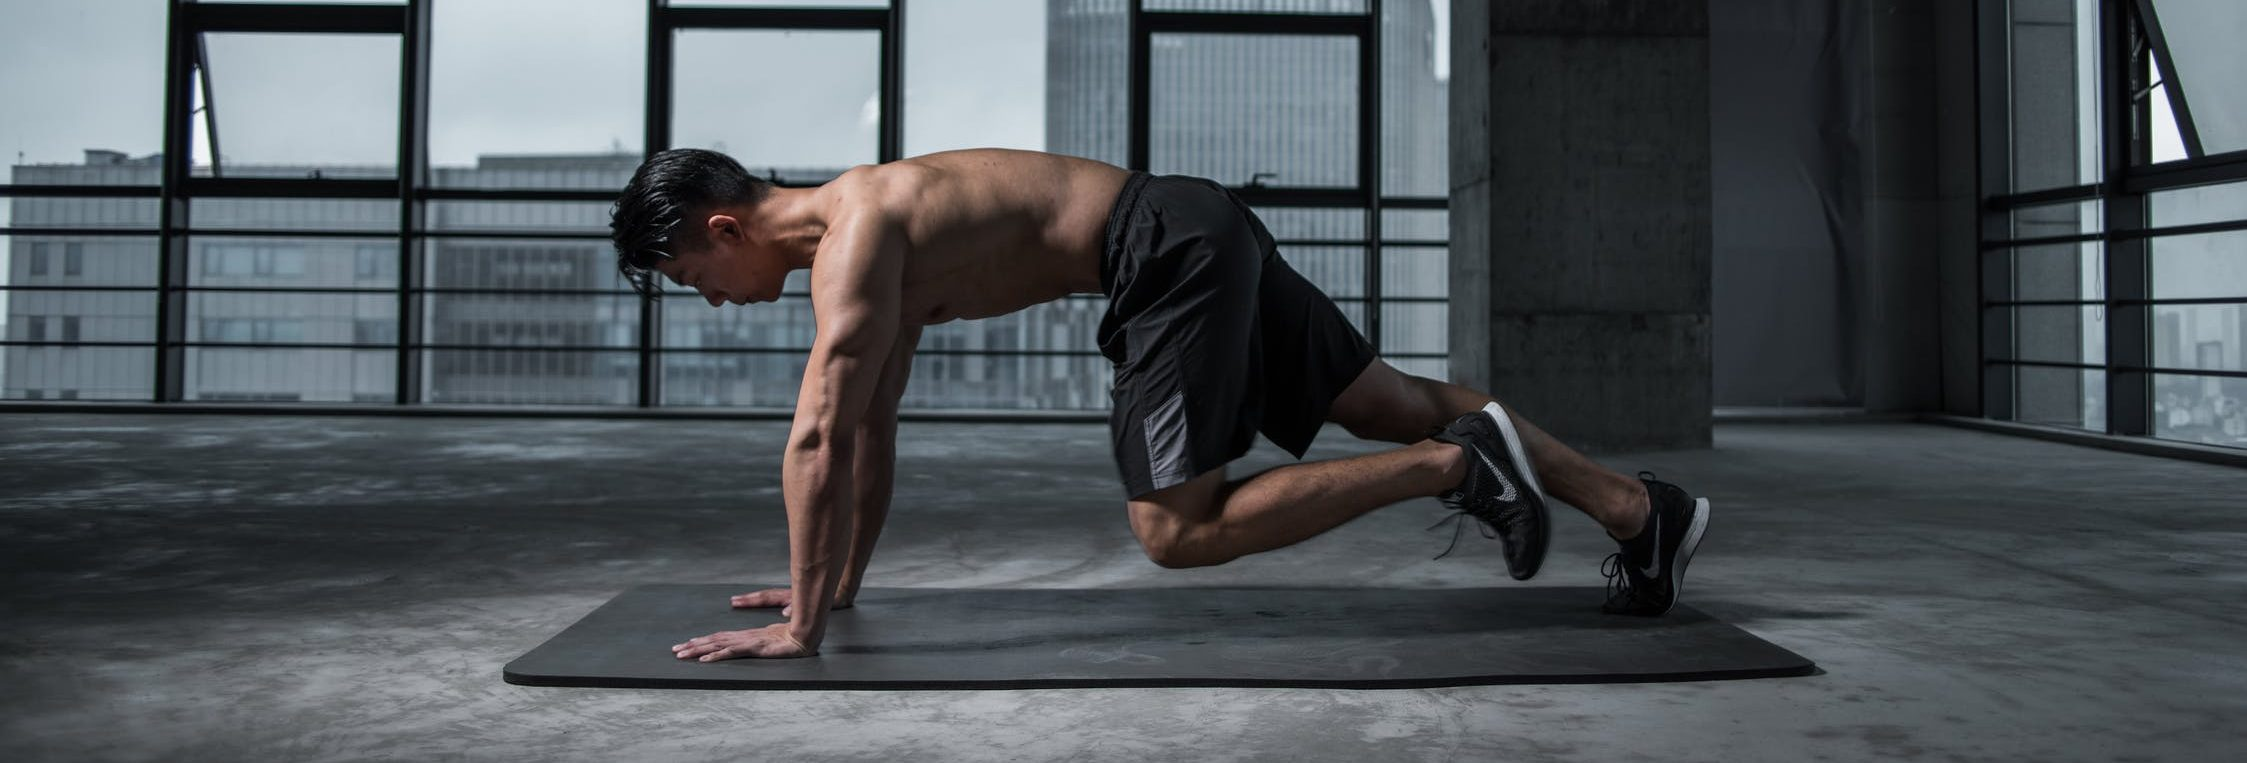 workouts at home, plank